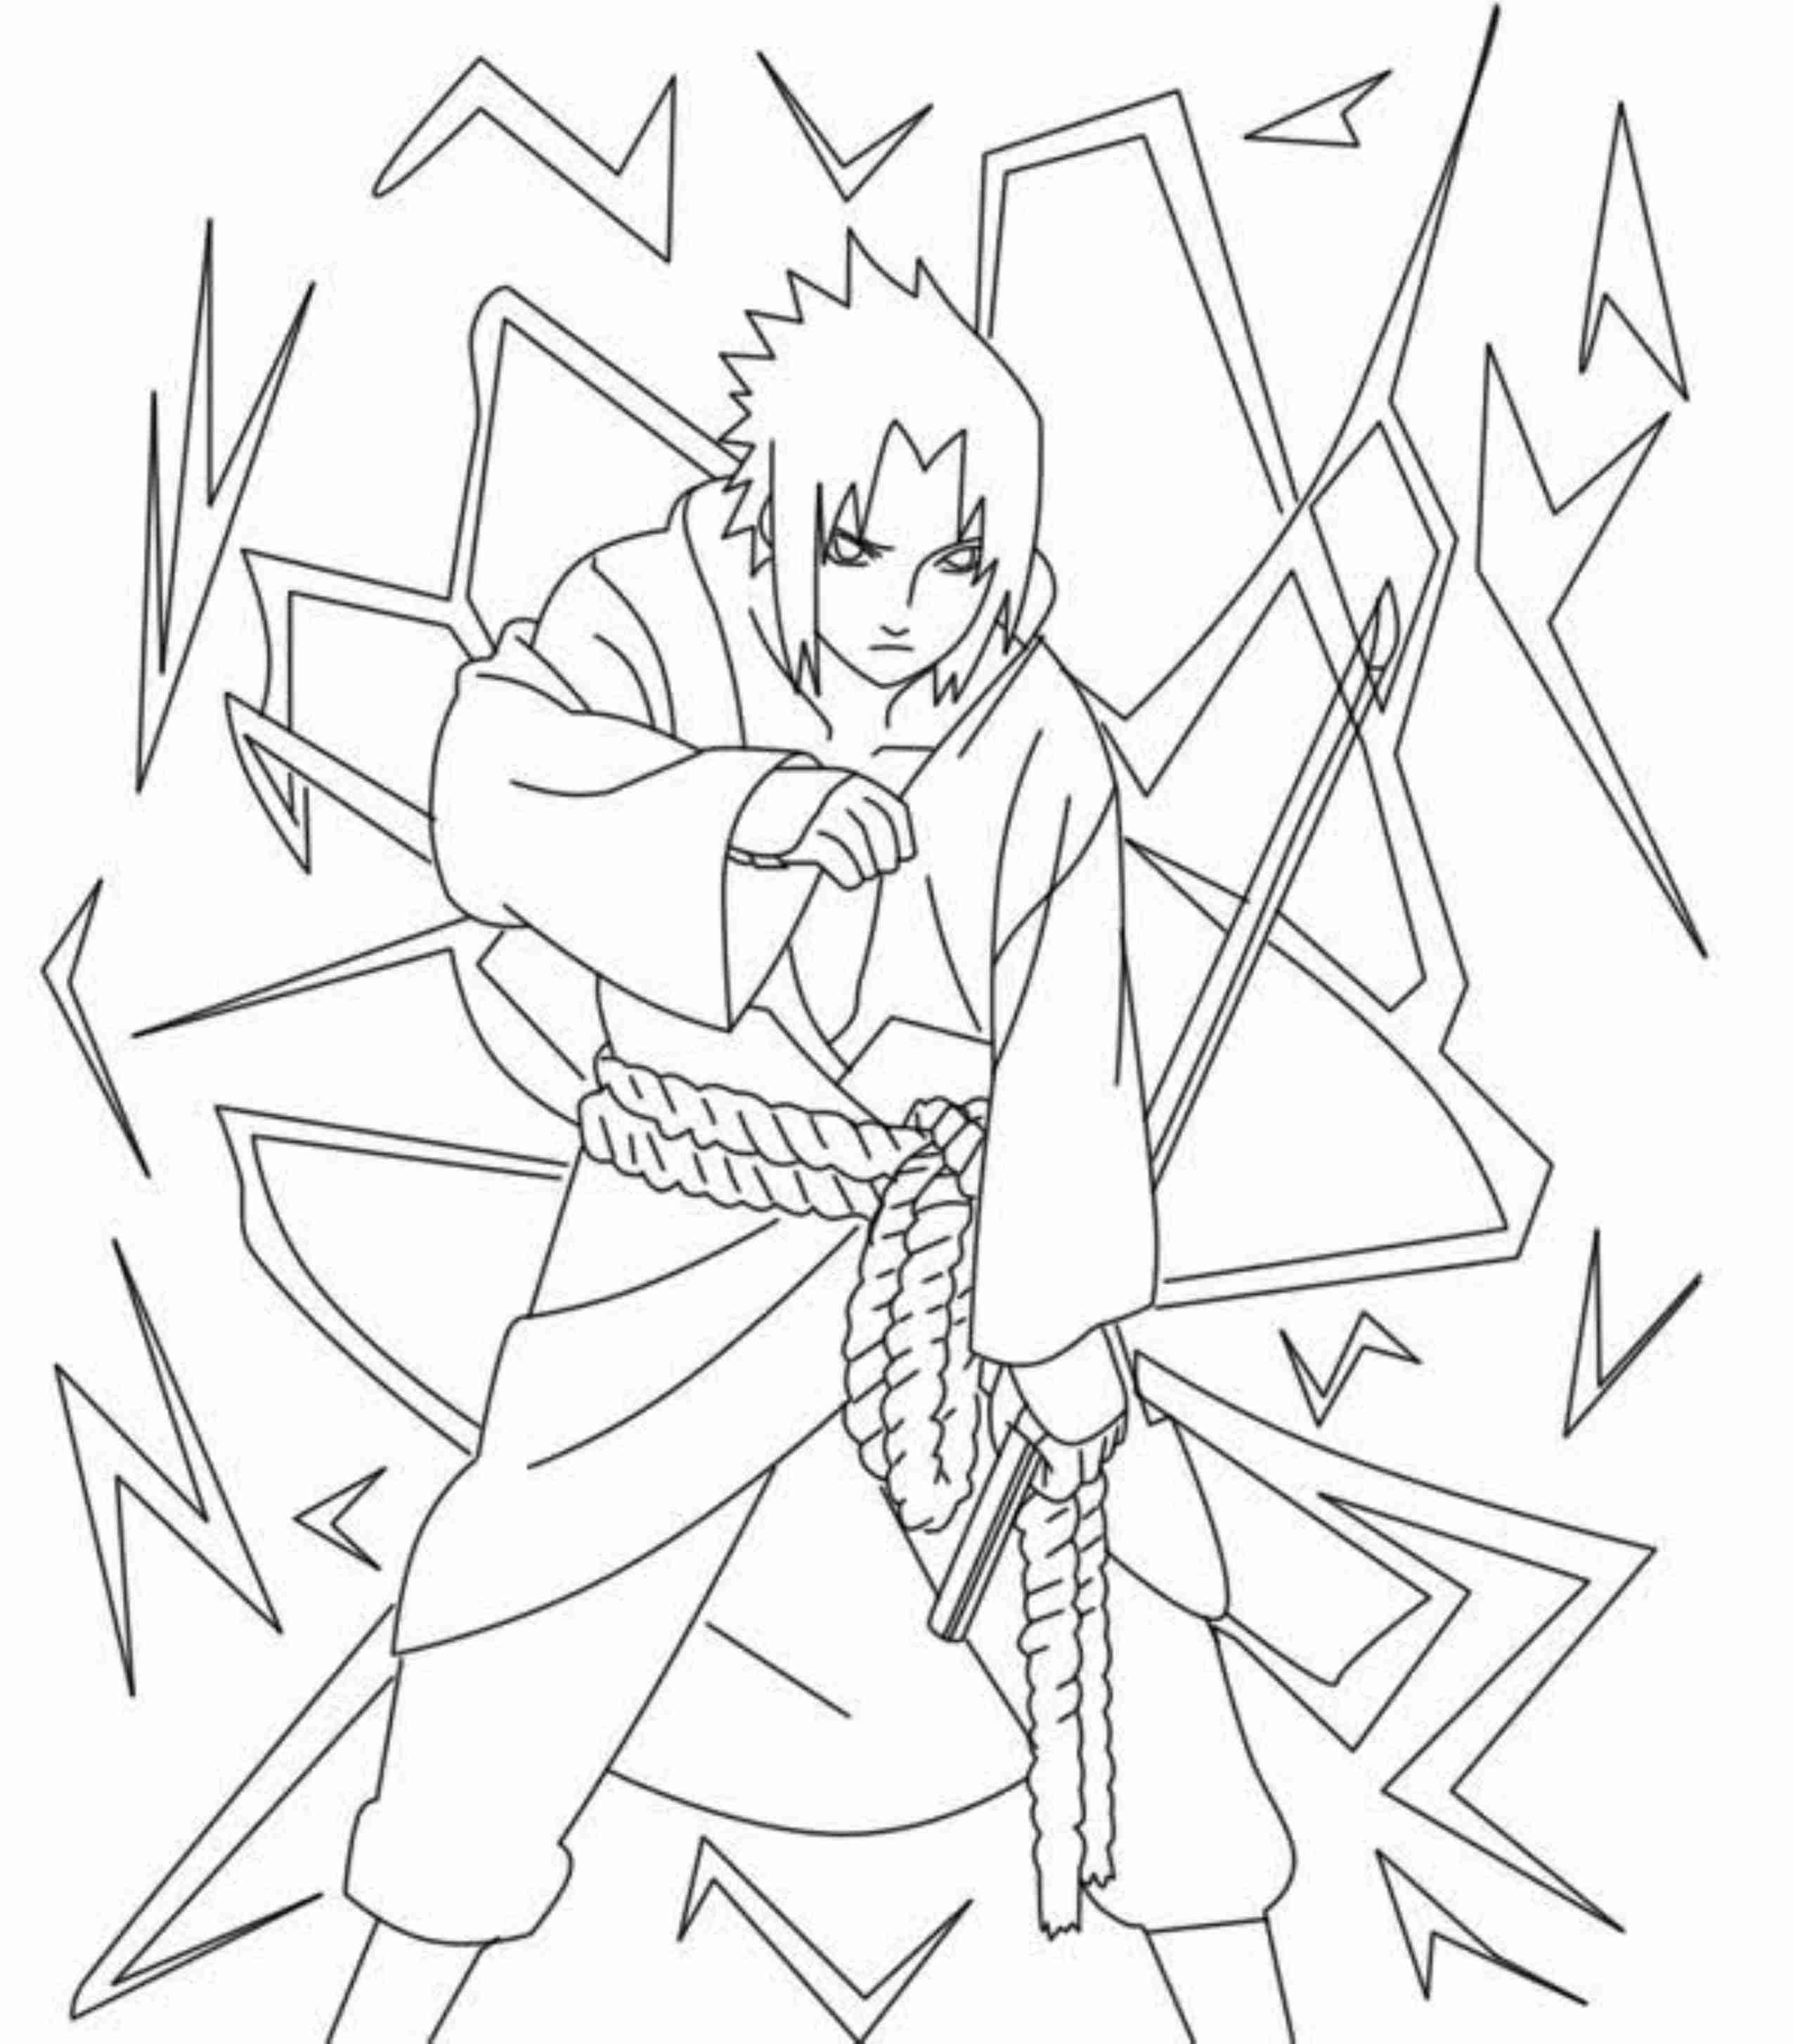 Naruto Coloring Pages Pdf : Naruto akatsuki coloring pages for kids and adults